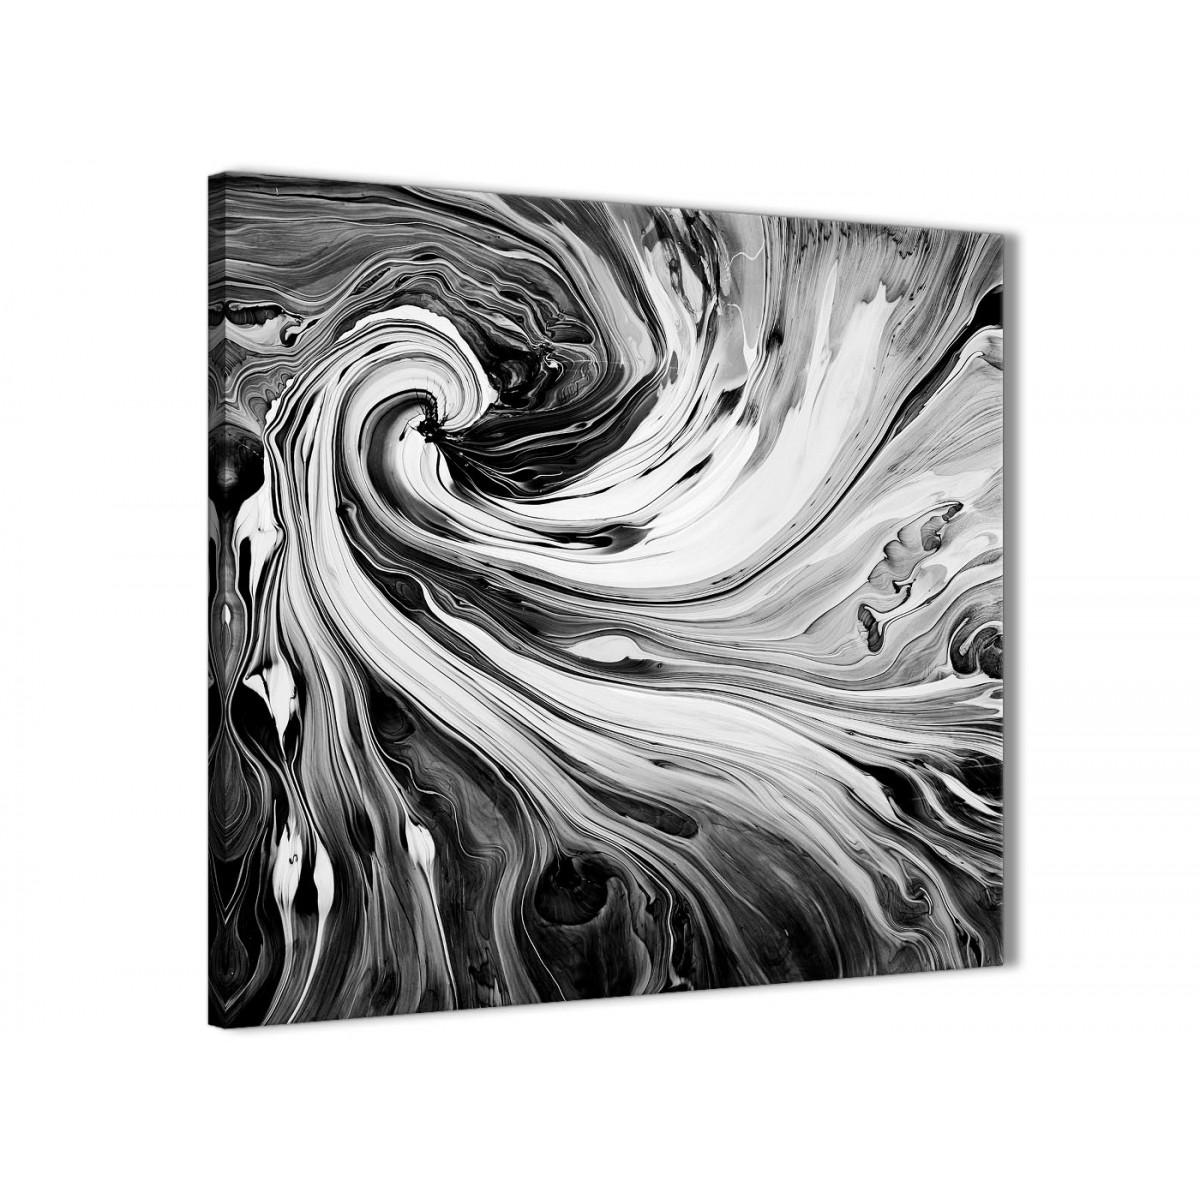 Black White And Gray Paintings Black White Grey Swirls Modern Abstract Canvas Wall Art